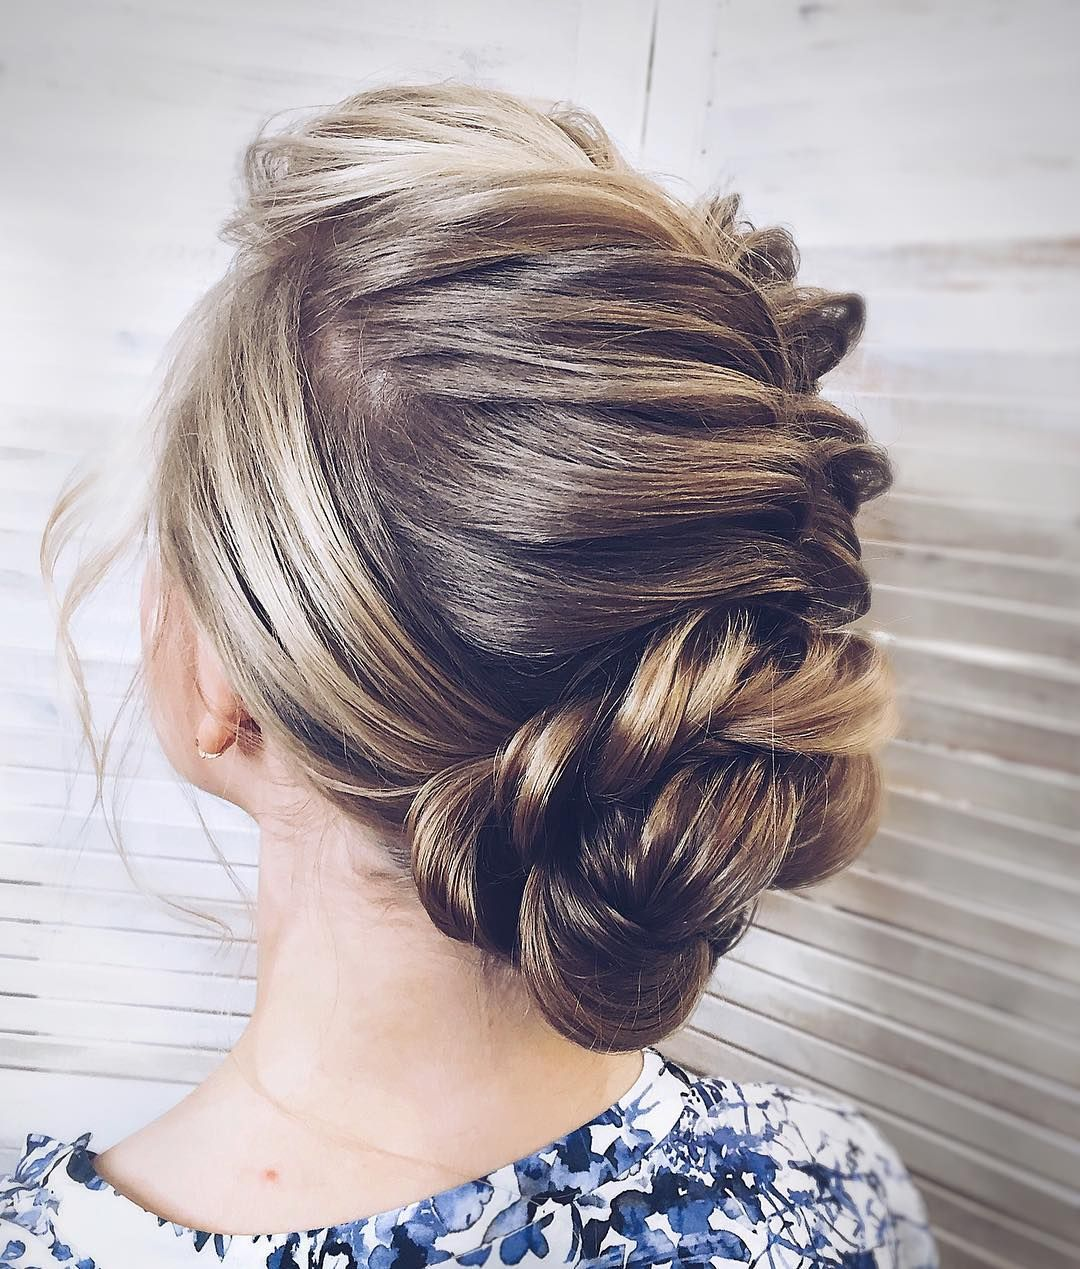 messy updo hairstyle ,swept back bridal hairstyle ,updo hairstyles ,wedding hairstyles #weddinghair #hairstyles #updo